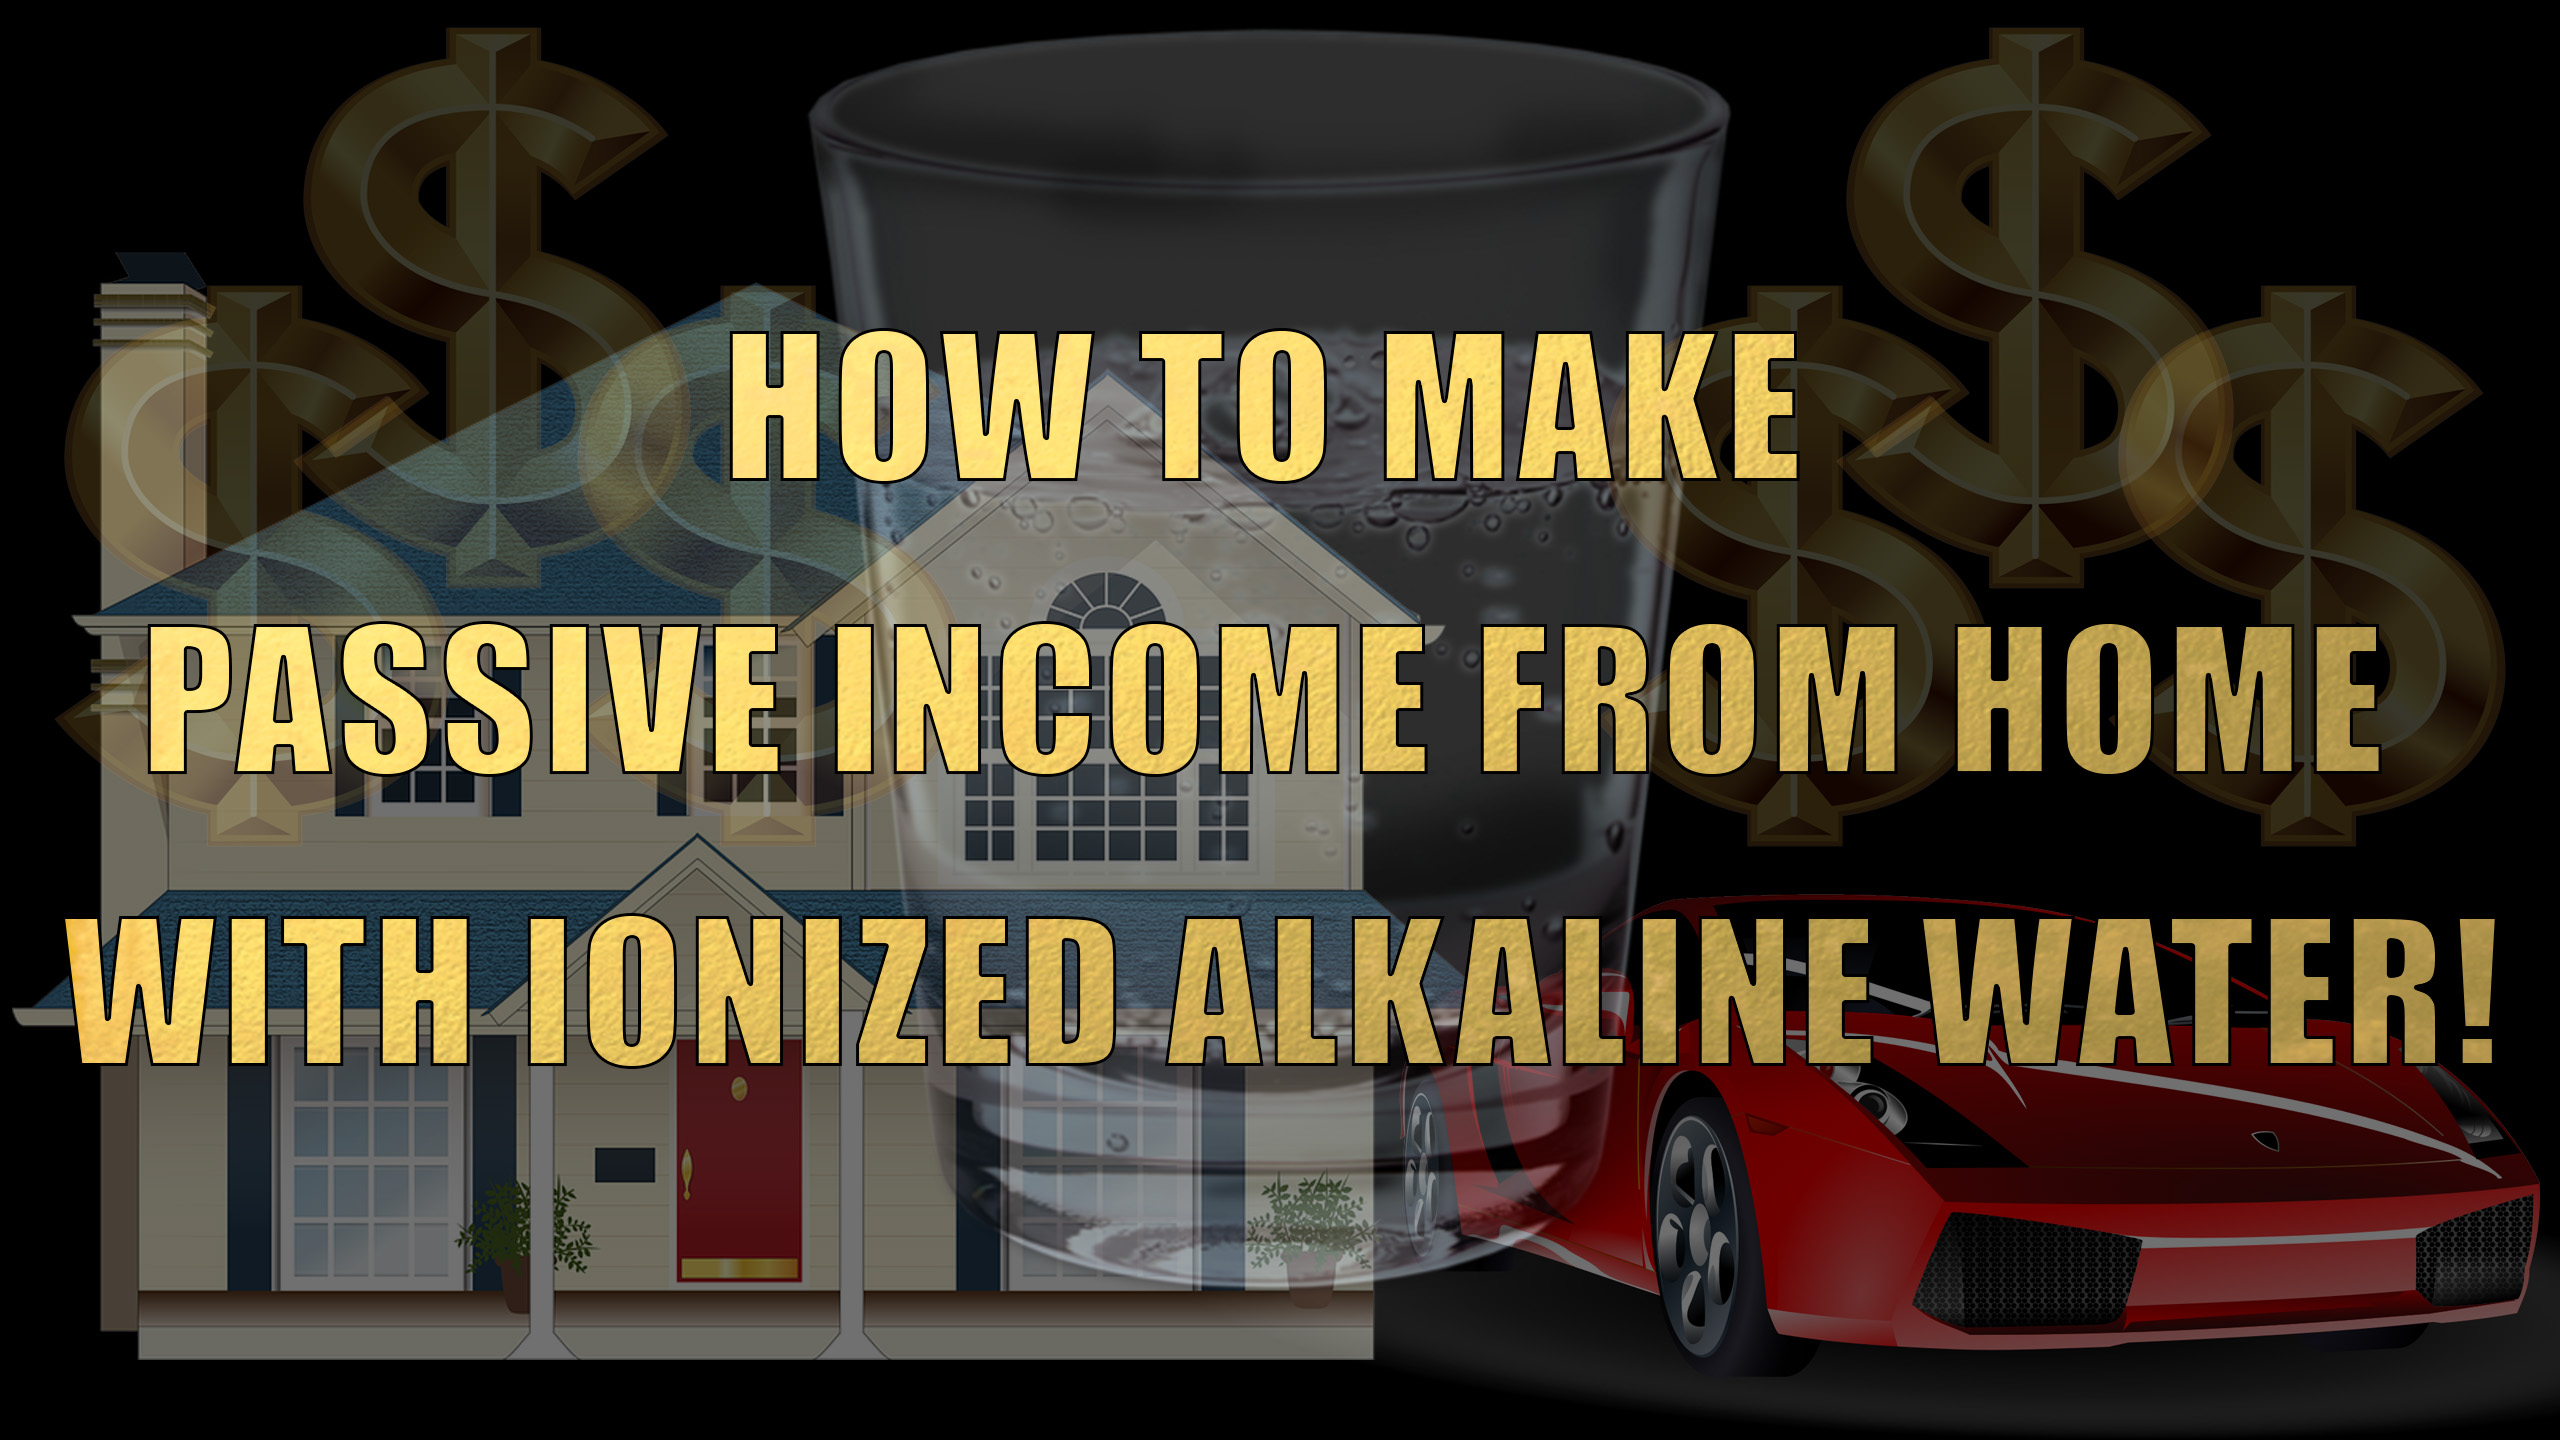 How to Make Passive Income from Home with Ionized Alkaline Water